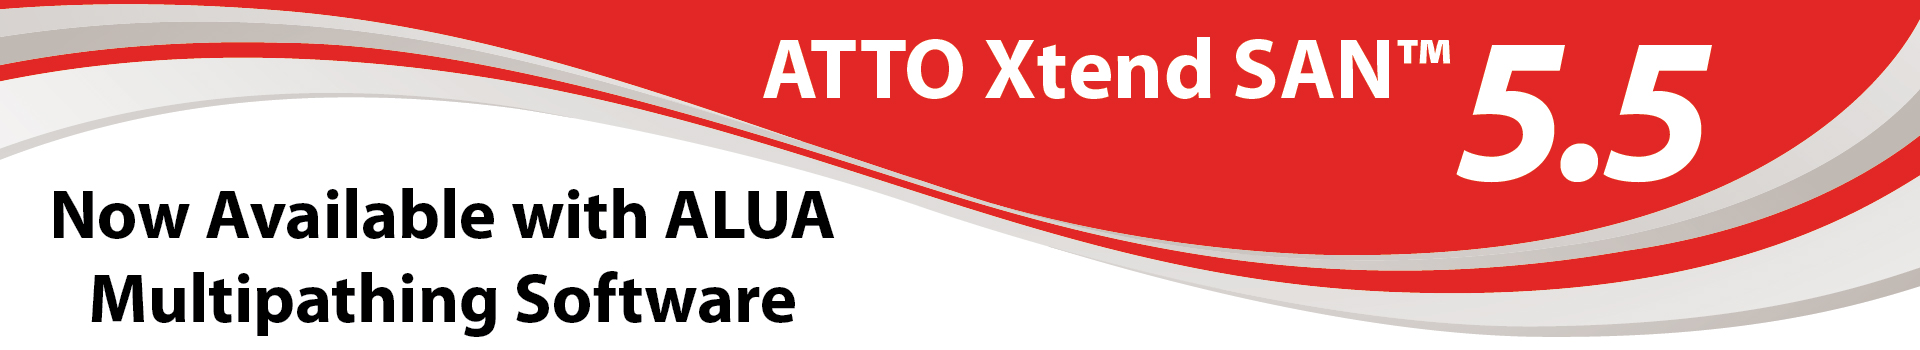 ATTO Xtend SAN 5.5 - Now ready!